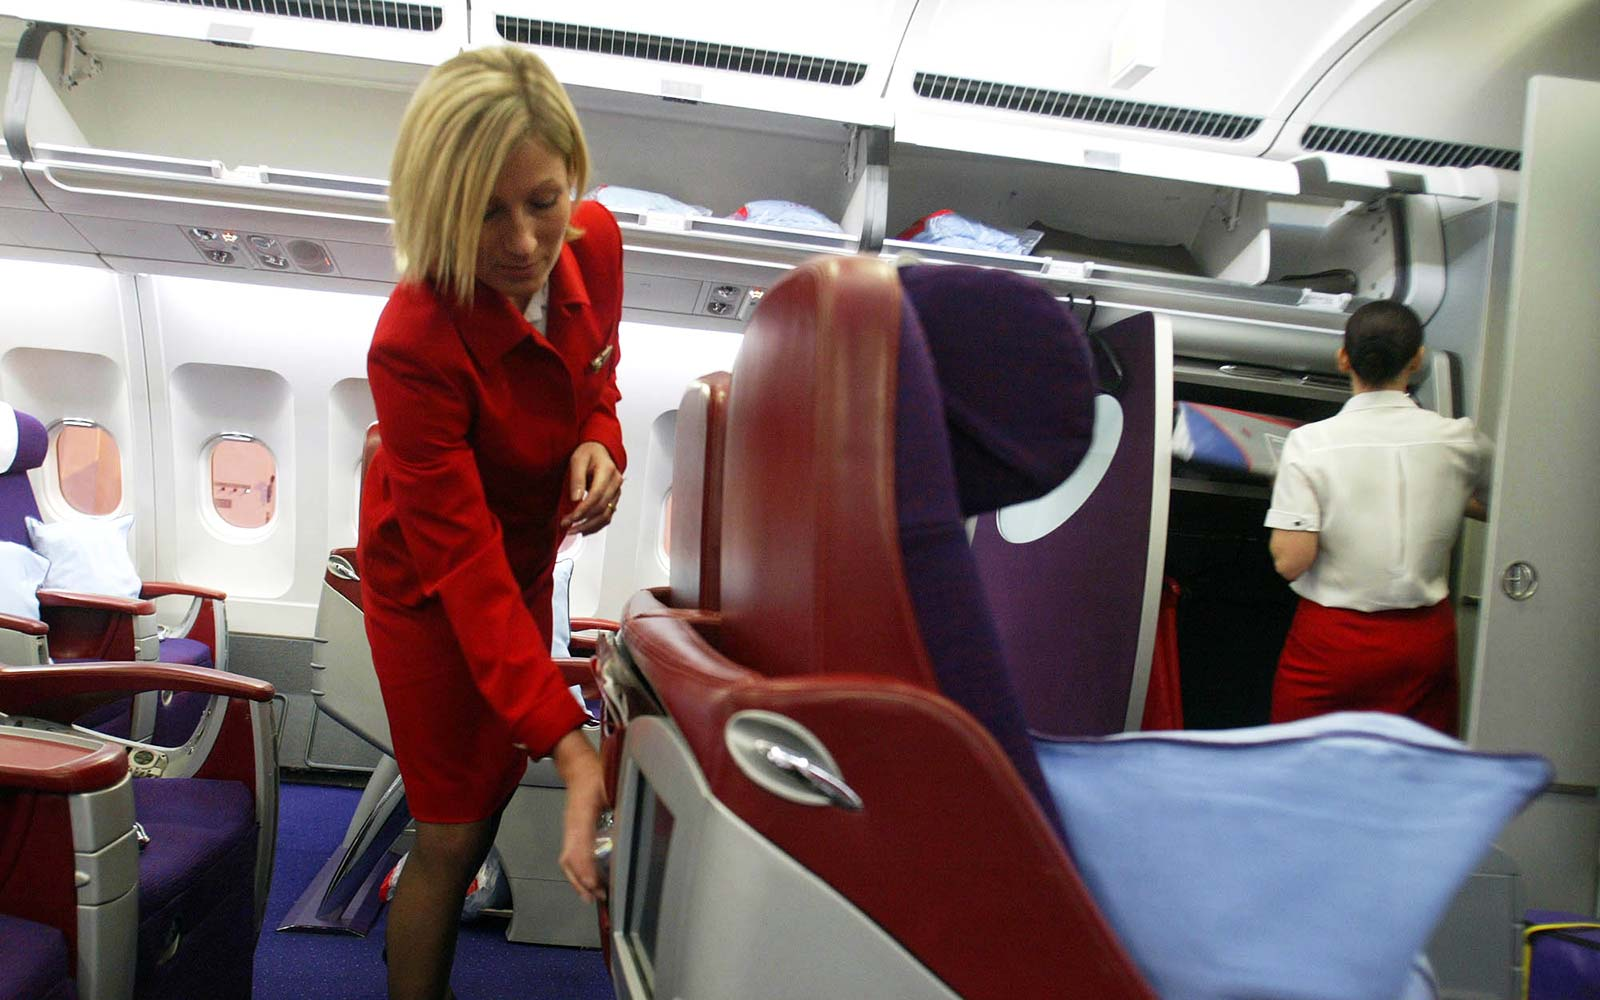 Virgin Atlantic airplane cabin flight attendant